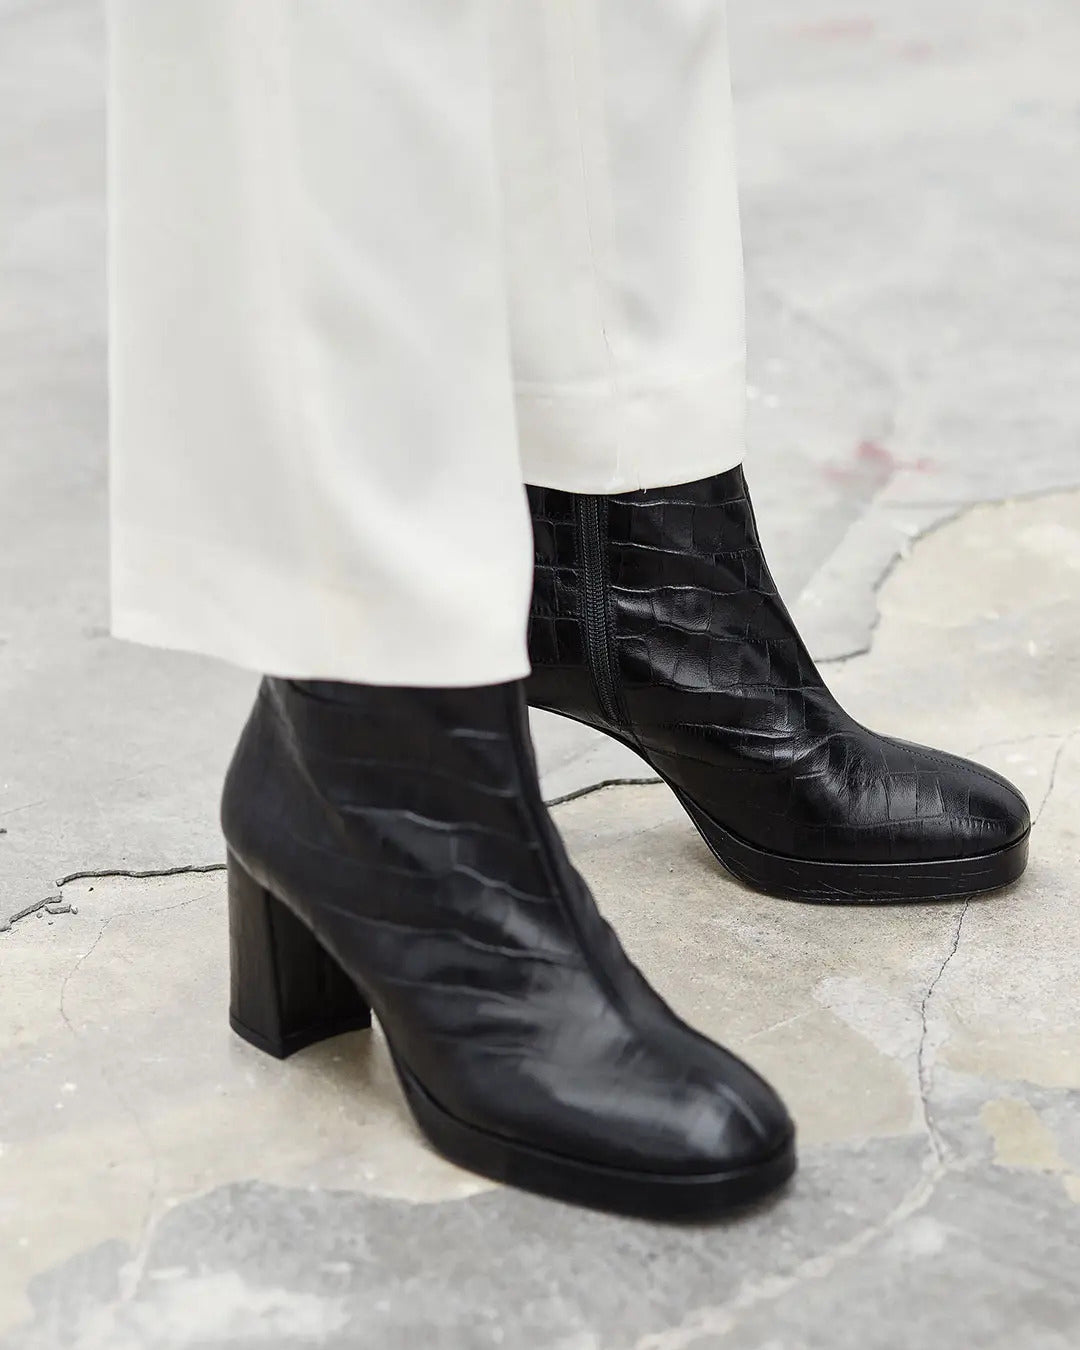 MIISTA Edith Ankle Boots / Black Croc